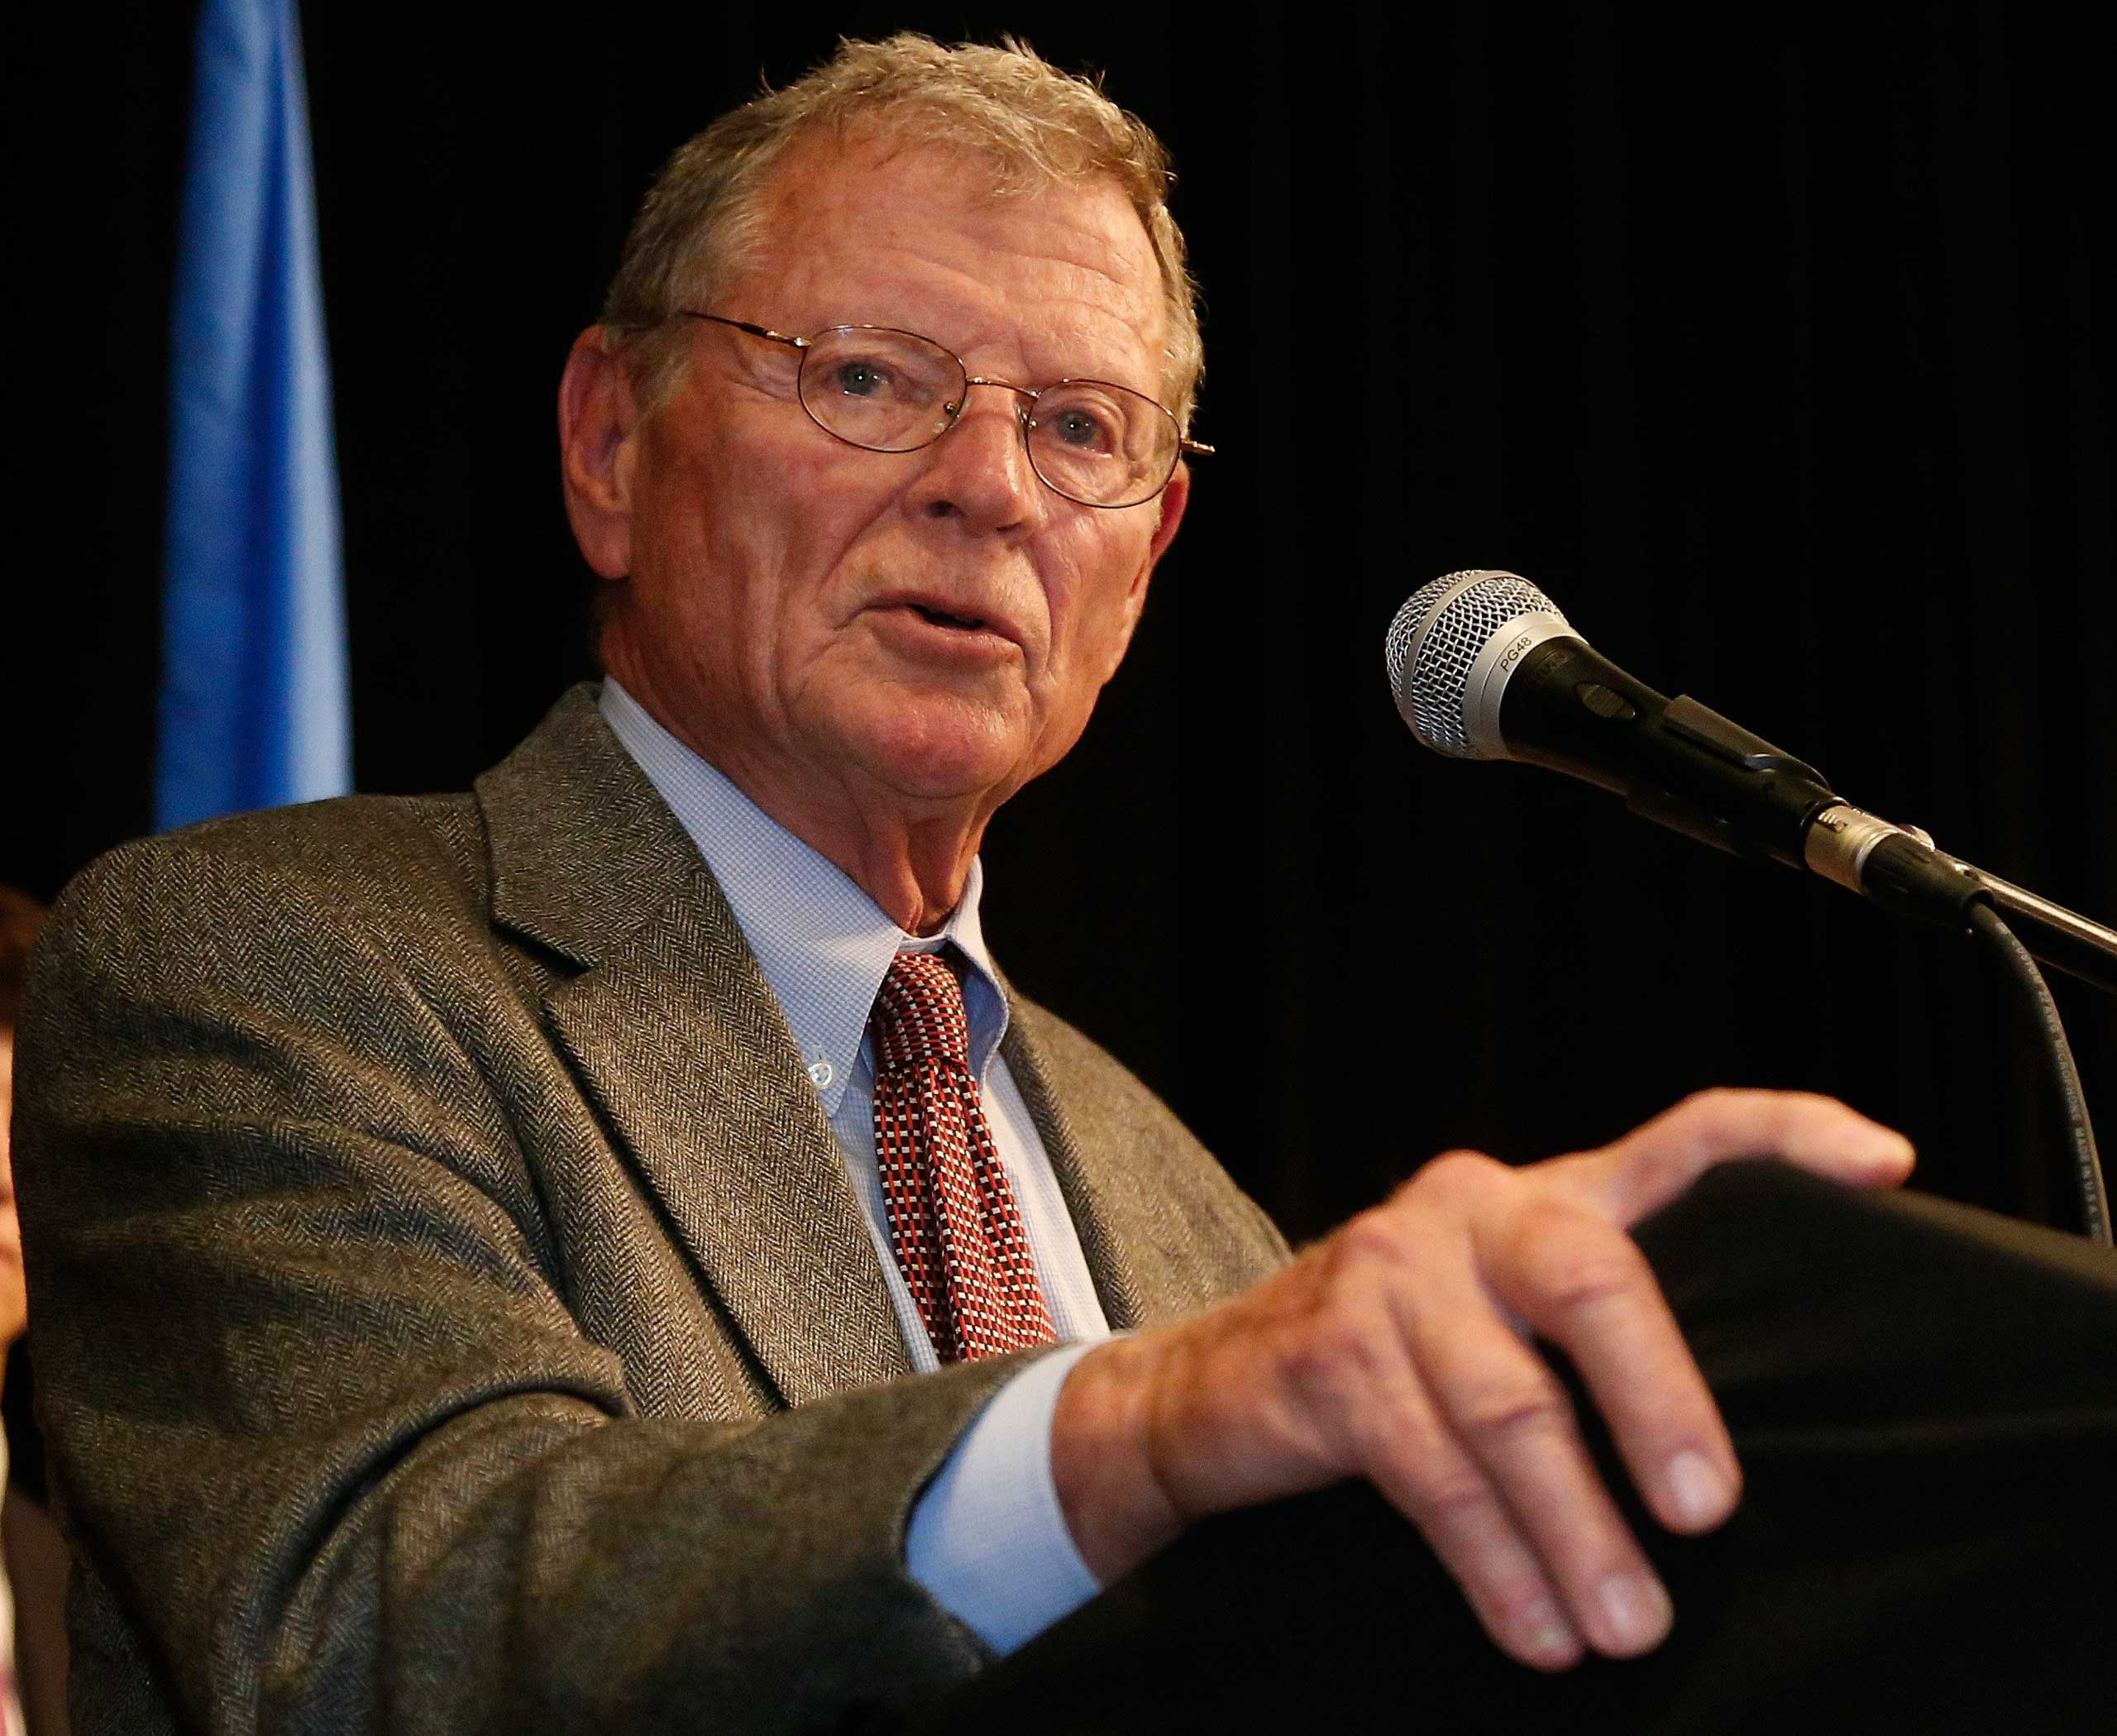 Sen. Jim Inhofe, R-Okla. gives a victory speech at the Republican watch party in Oklahoma City on Nov. 4, 2014.